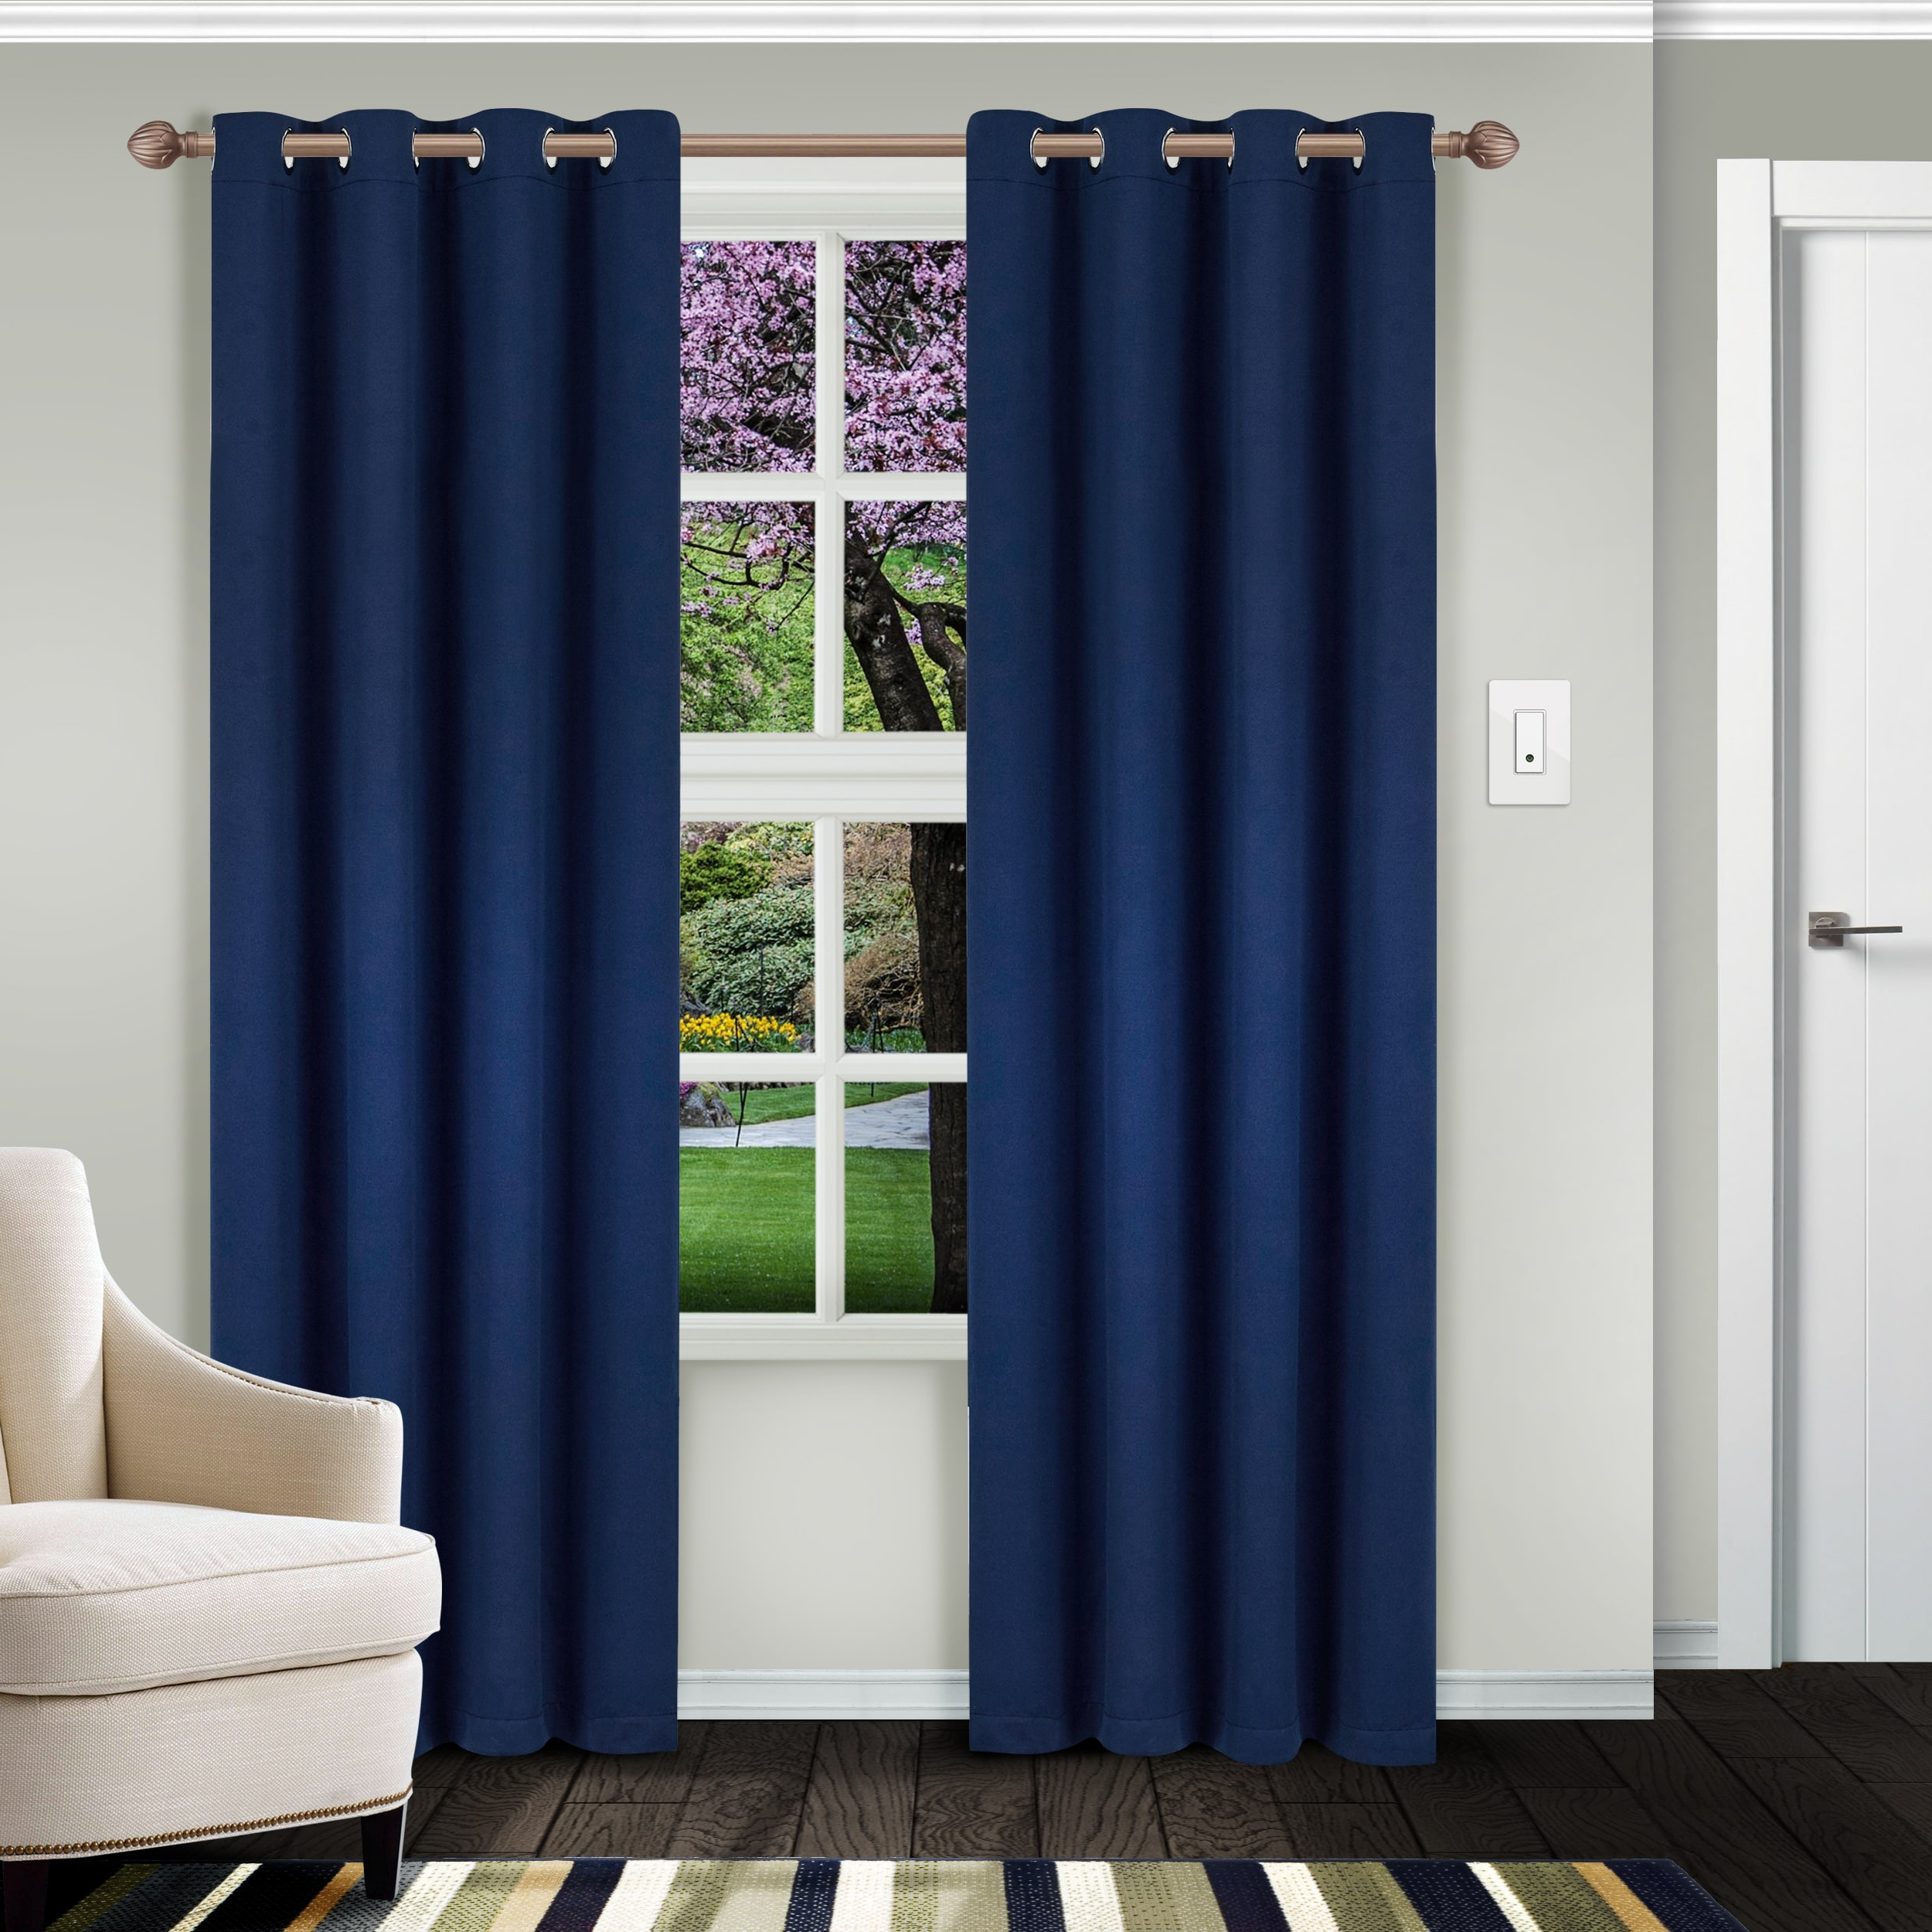 Fashionable Superior Solid Insulated Thermal Blackout Grommet Curtain With Regard To Solid Insulated Thermal Blackout Curtain Panel Pairs (Gallery 8 of 20)